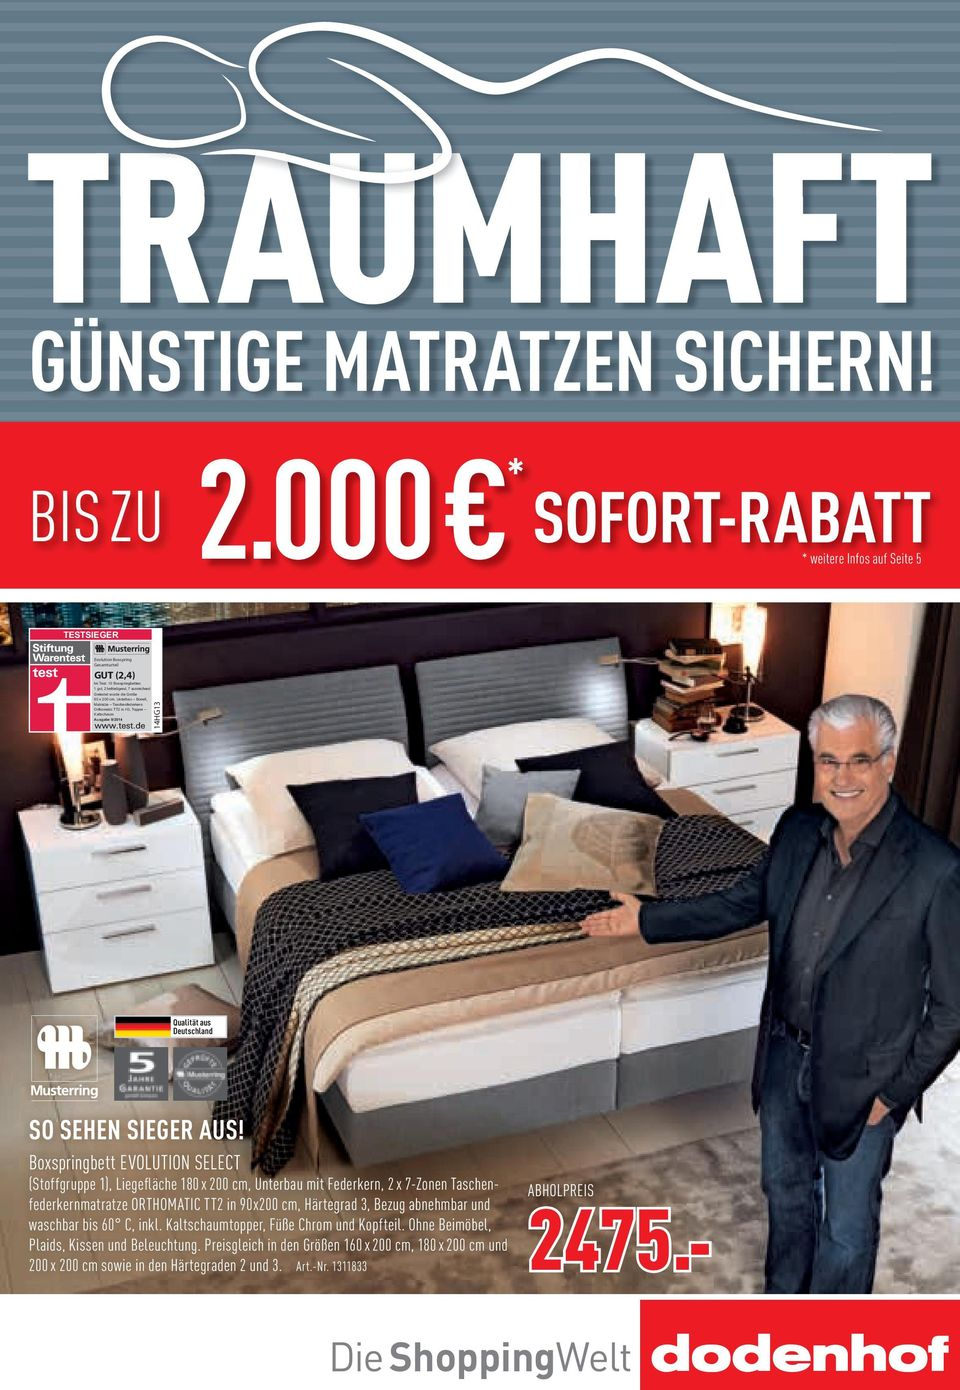 Boxspringbett warentest